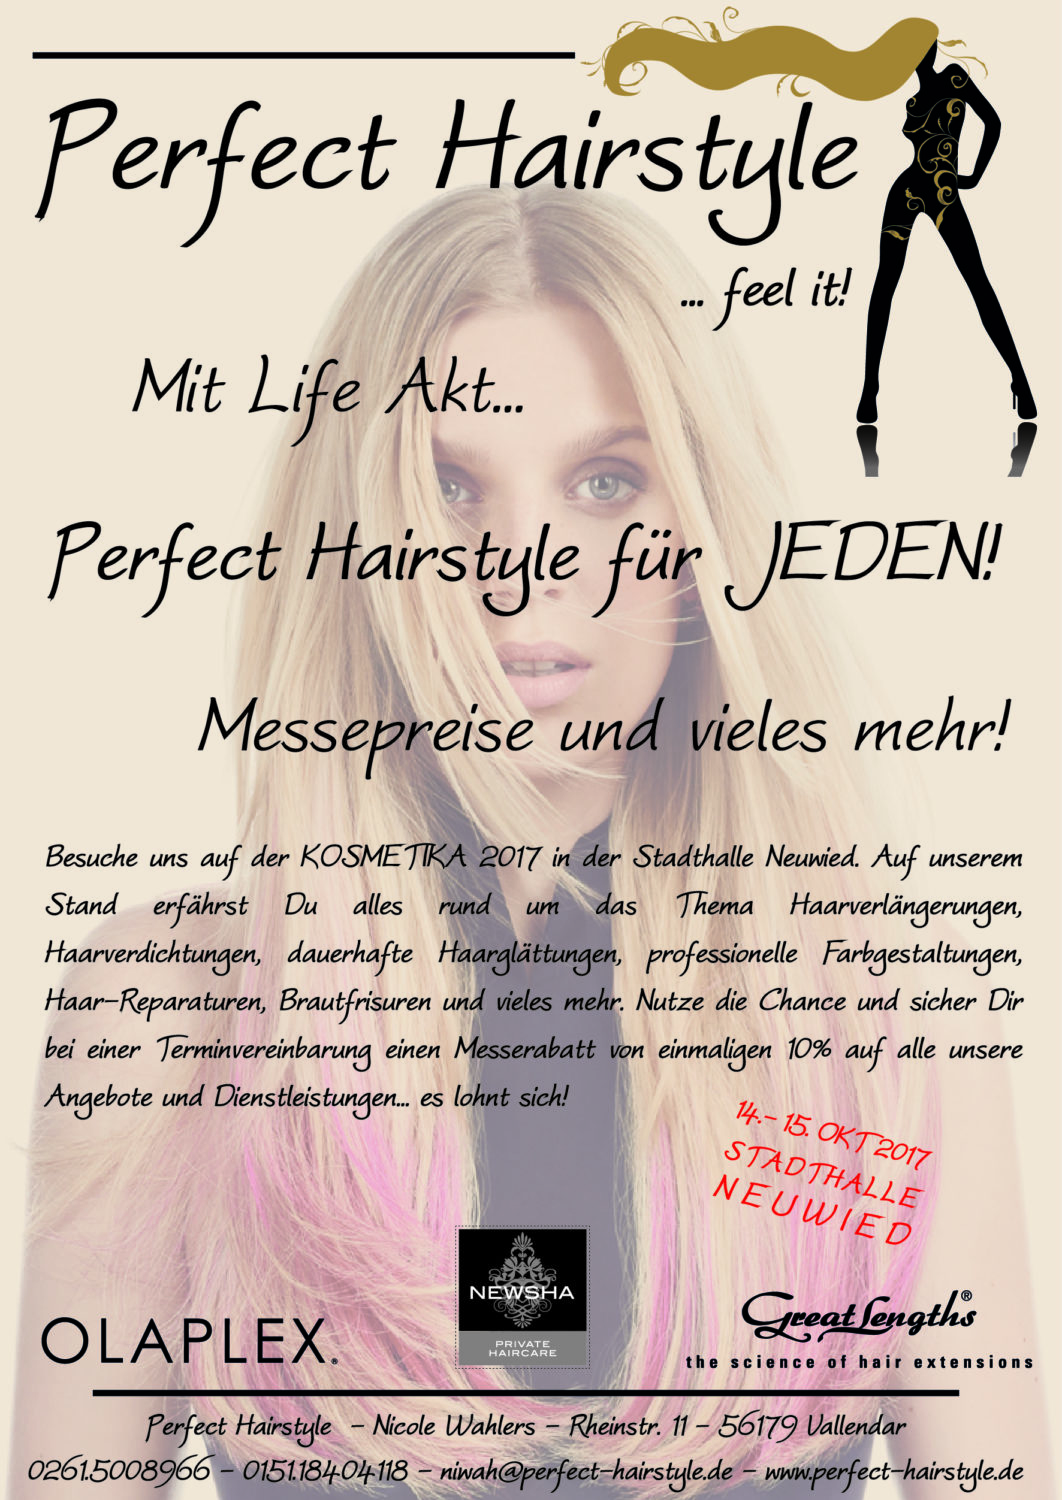 Beautymesse Beautymesse Rheinland mit Perfect Hairstyle im Heimat Haus Neuwied 01 Logo Perfect Hairstyle DINA5 high 01 1062x1500